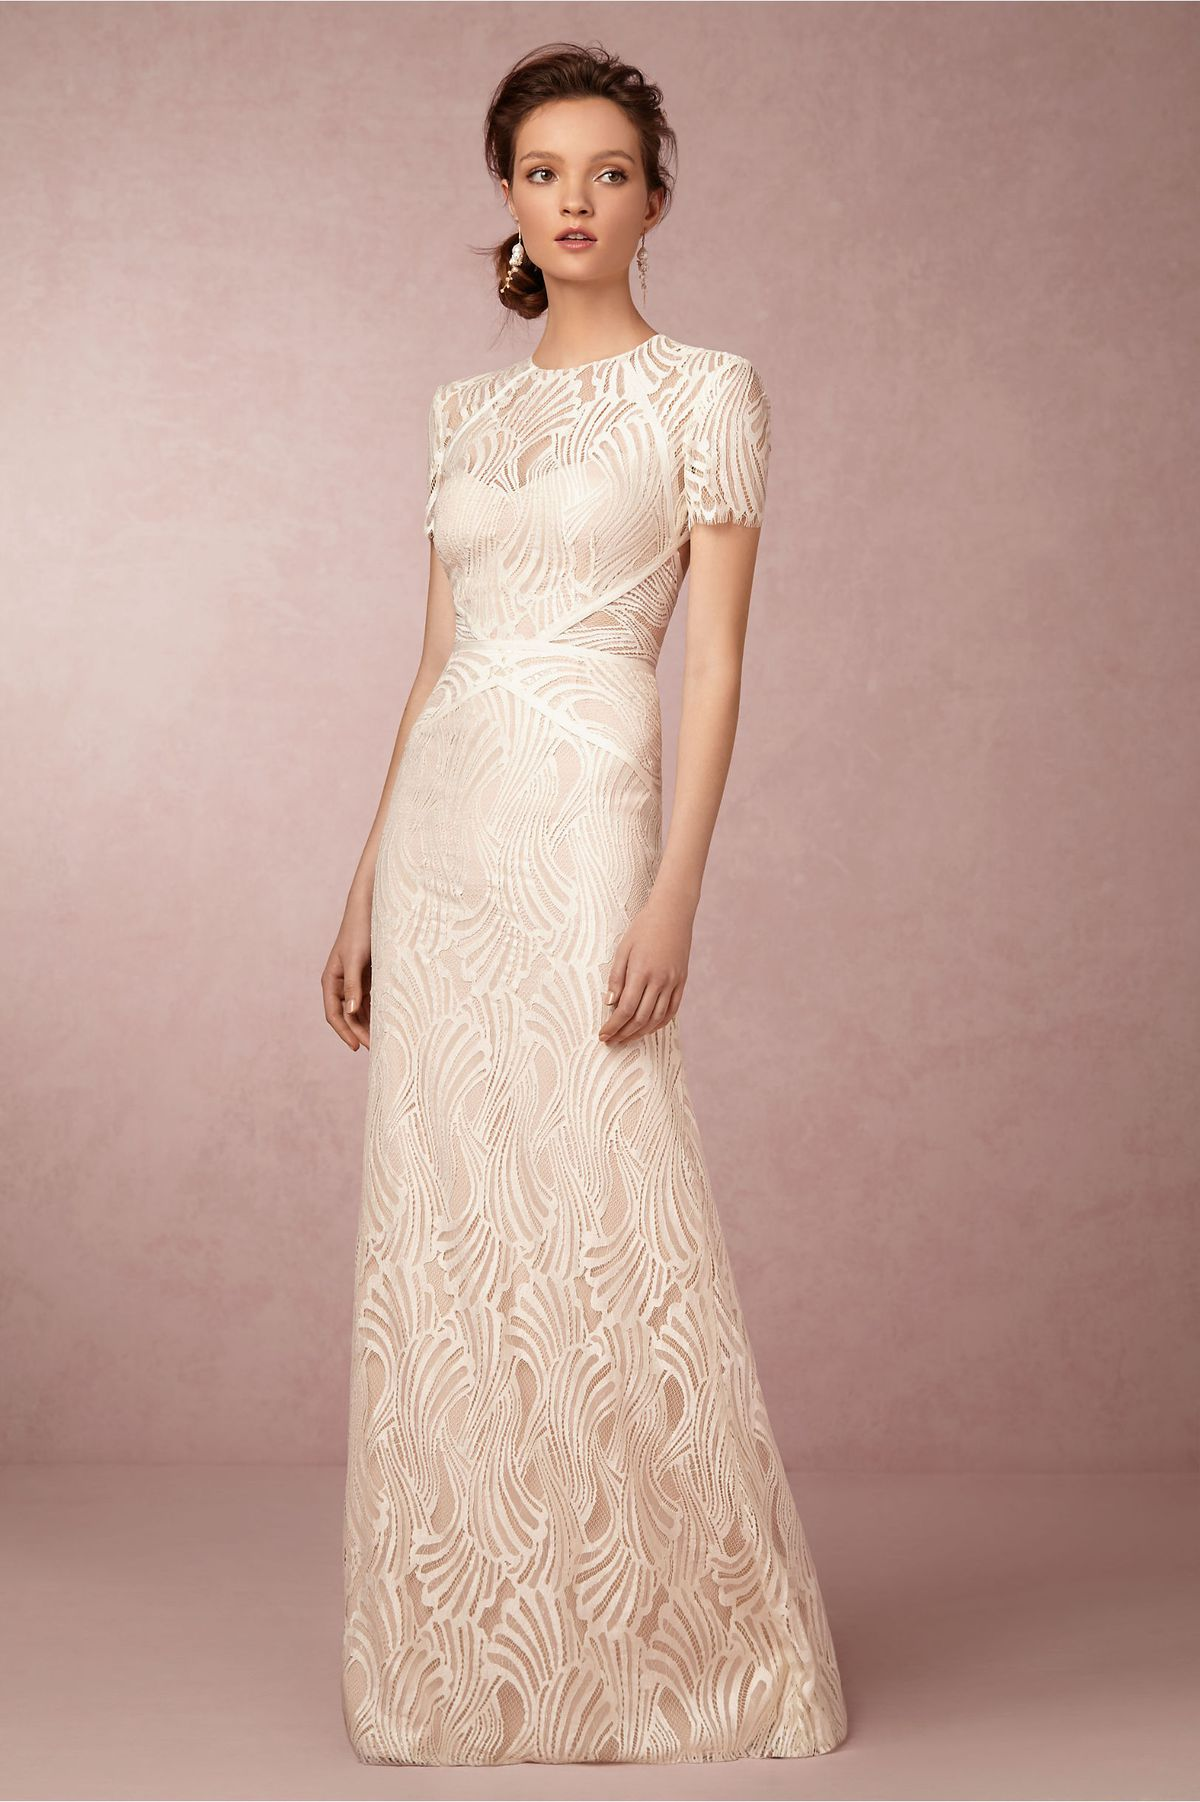 Where to Buy a Modest Wedding Dress - Racked